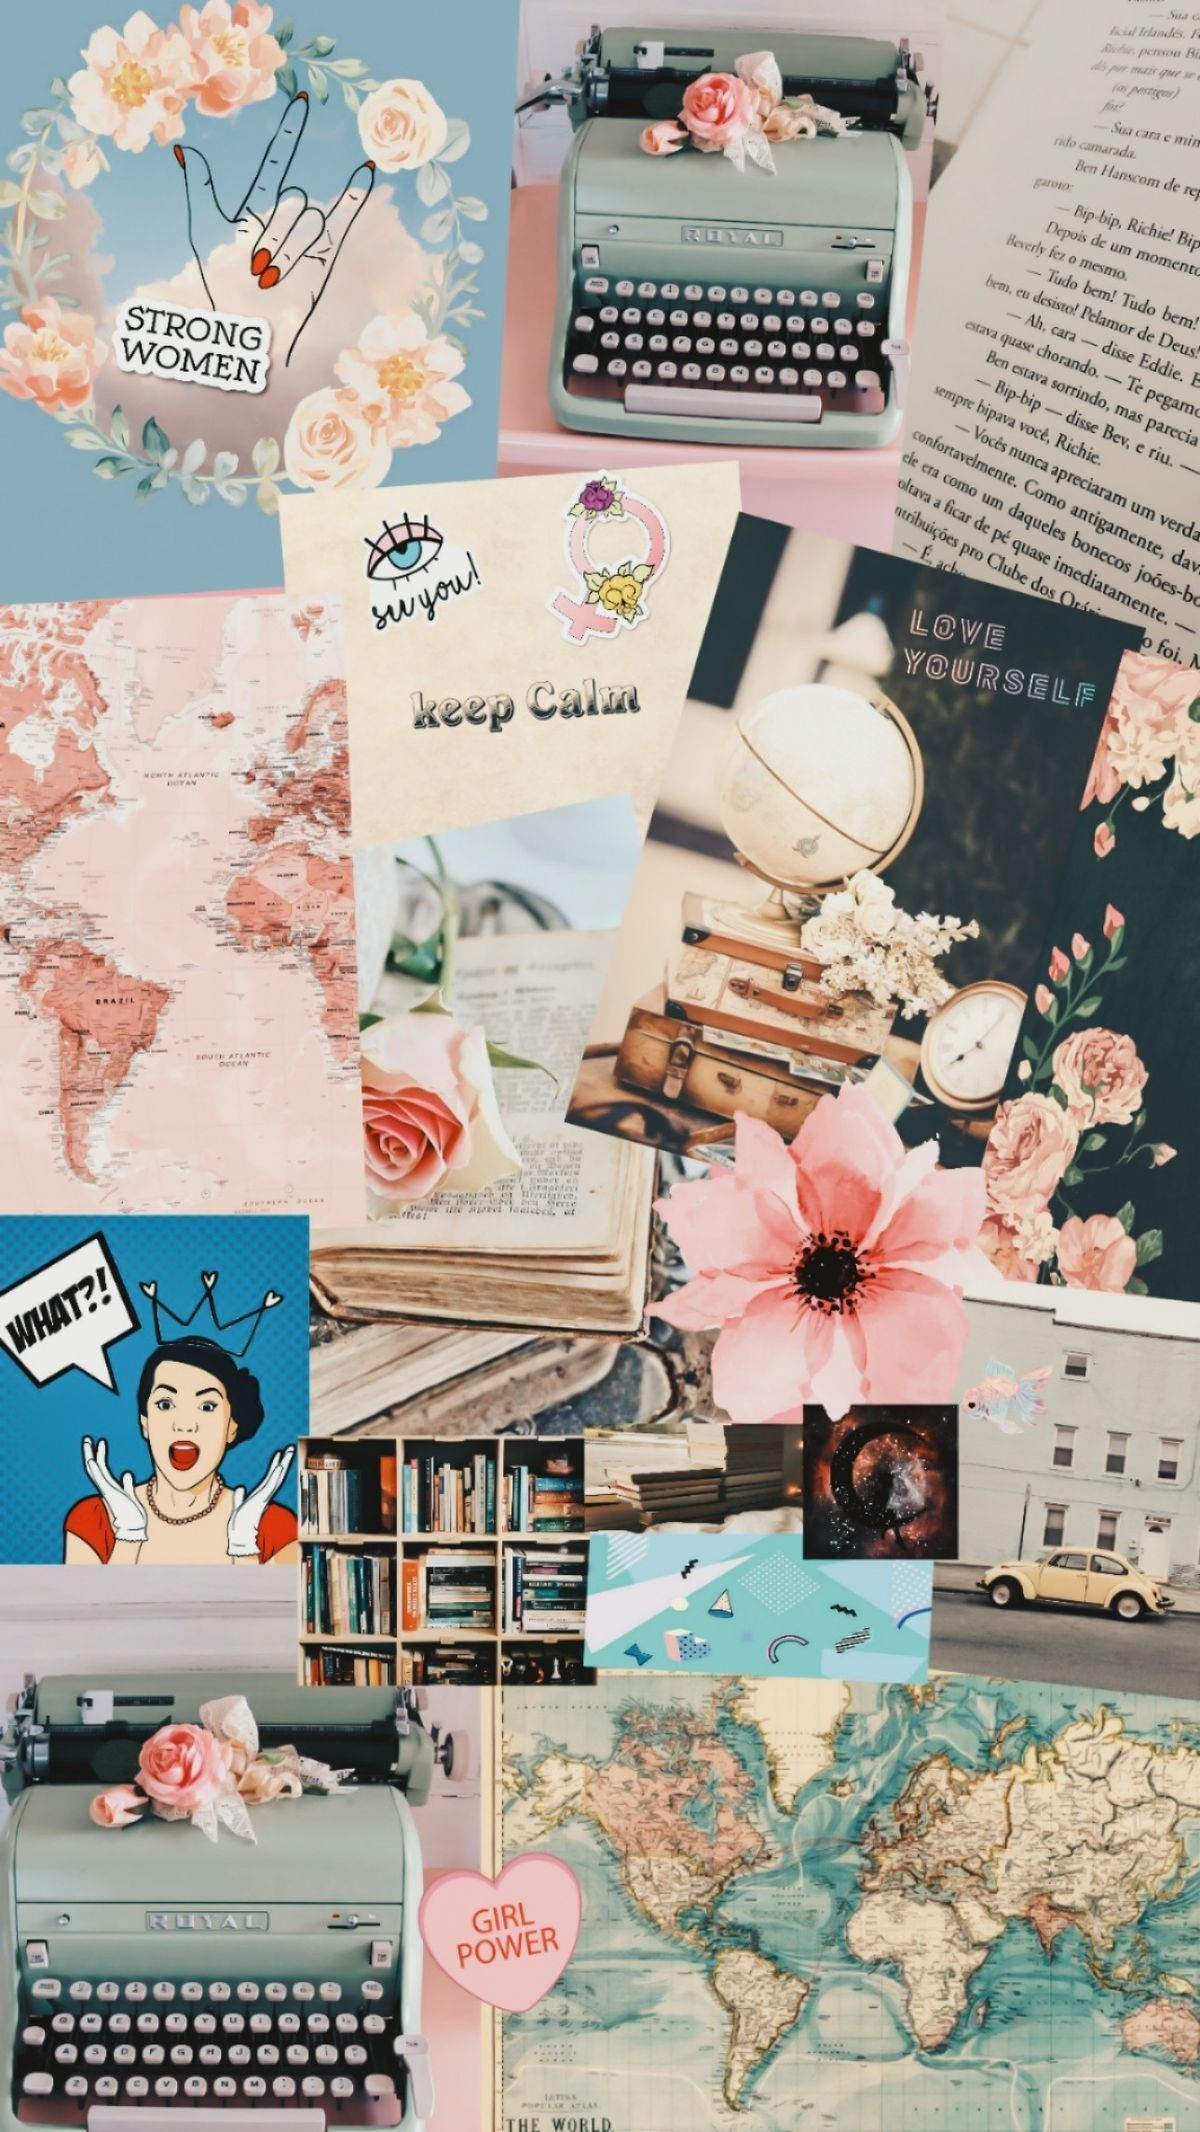 Typewriter girly vintage collage wallpapers